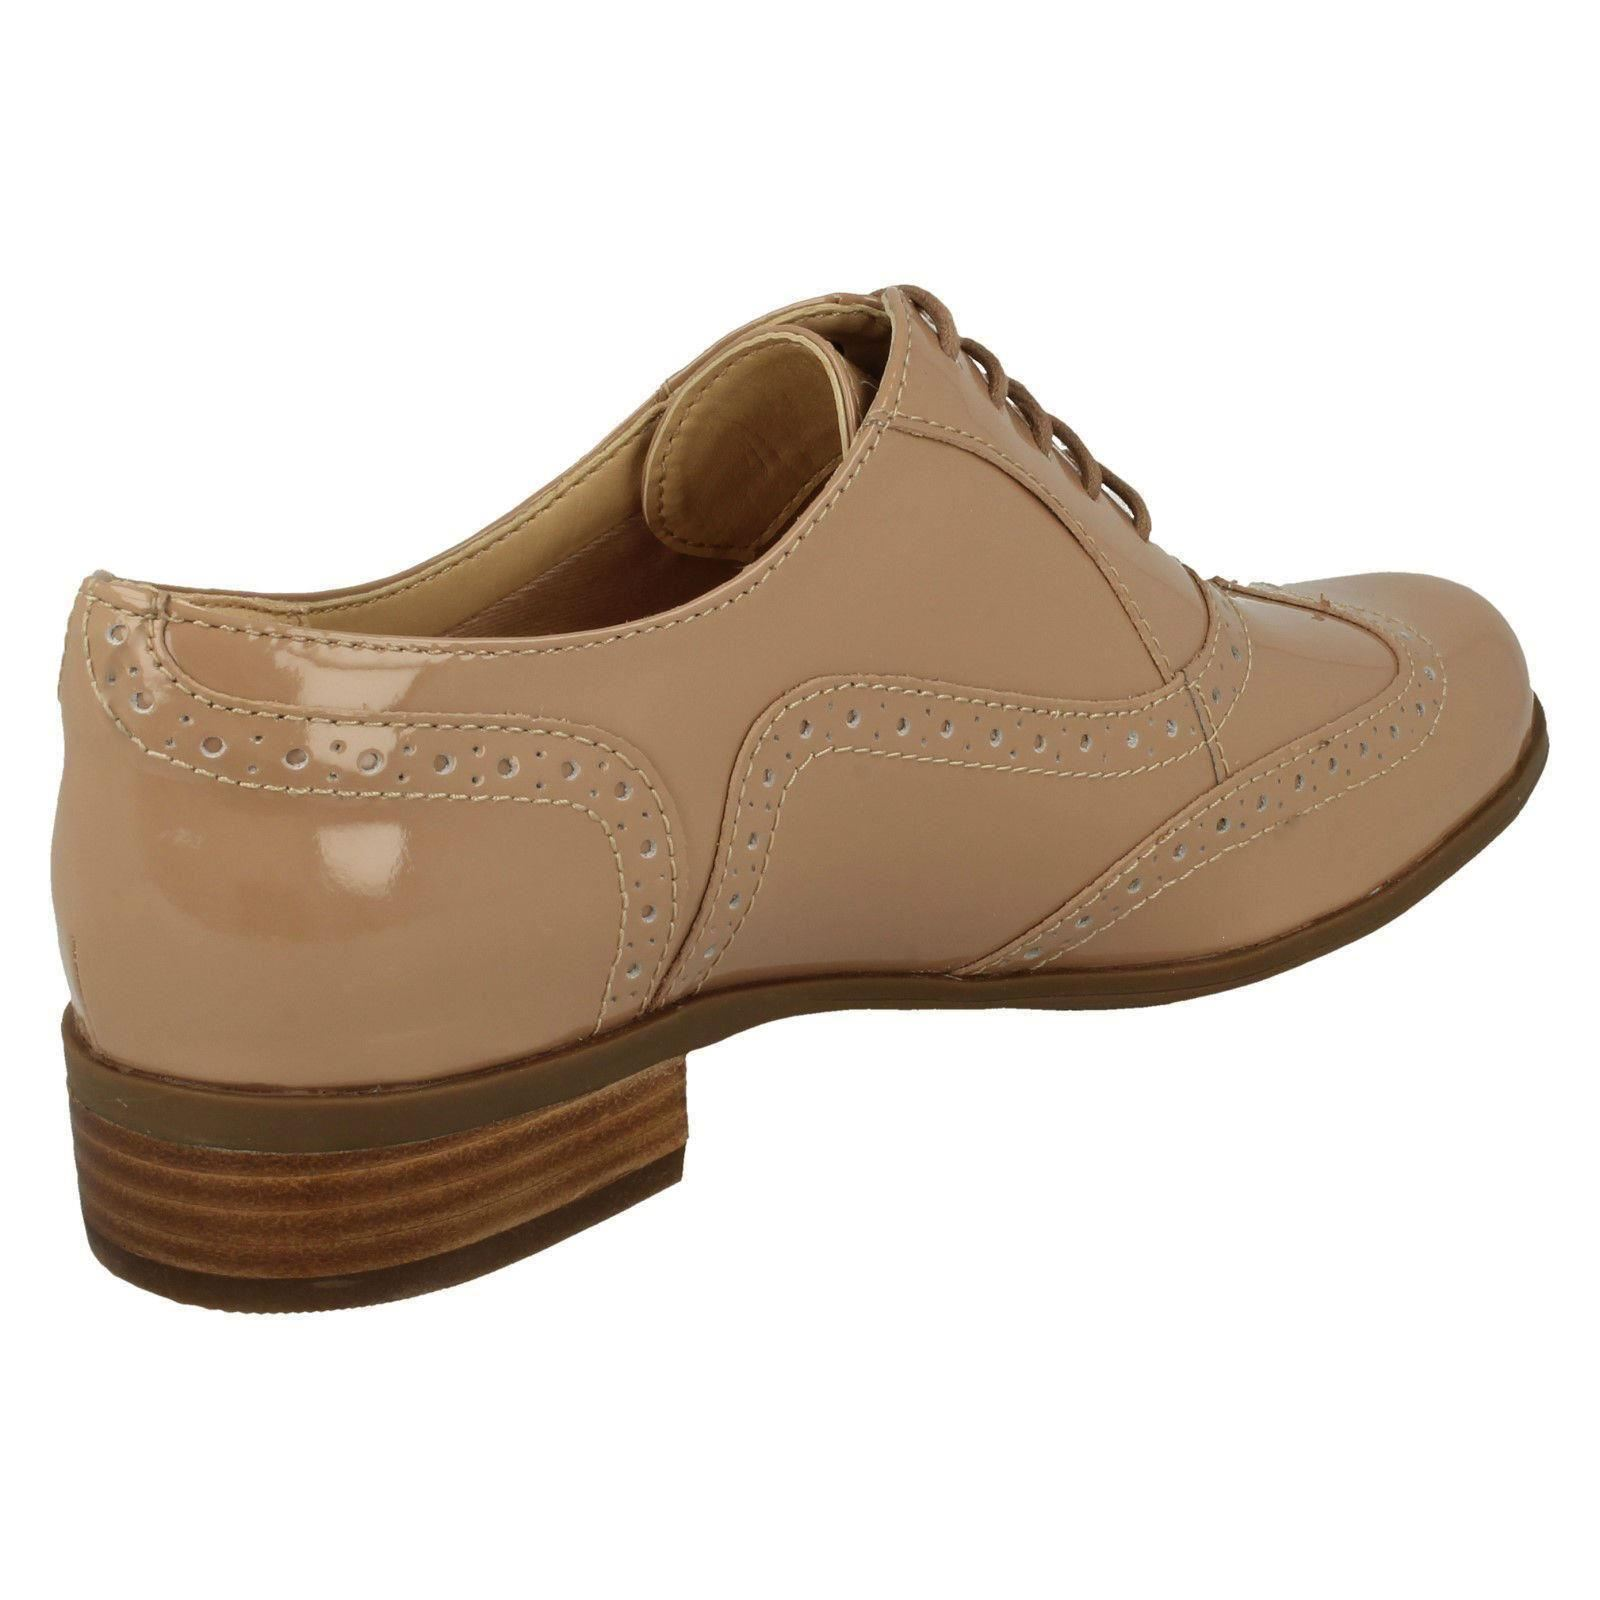 182698ab7a2 Clarks Ladies Vintage Style Leather Patent Lace Up Brogue Shoes ...